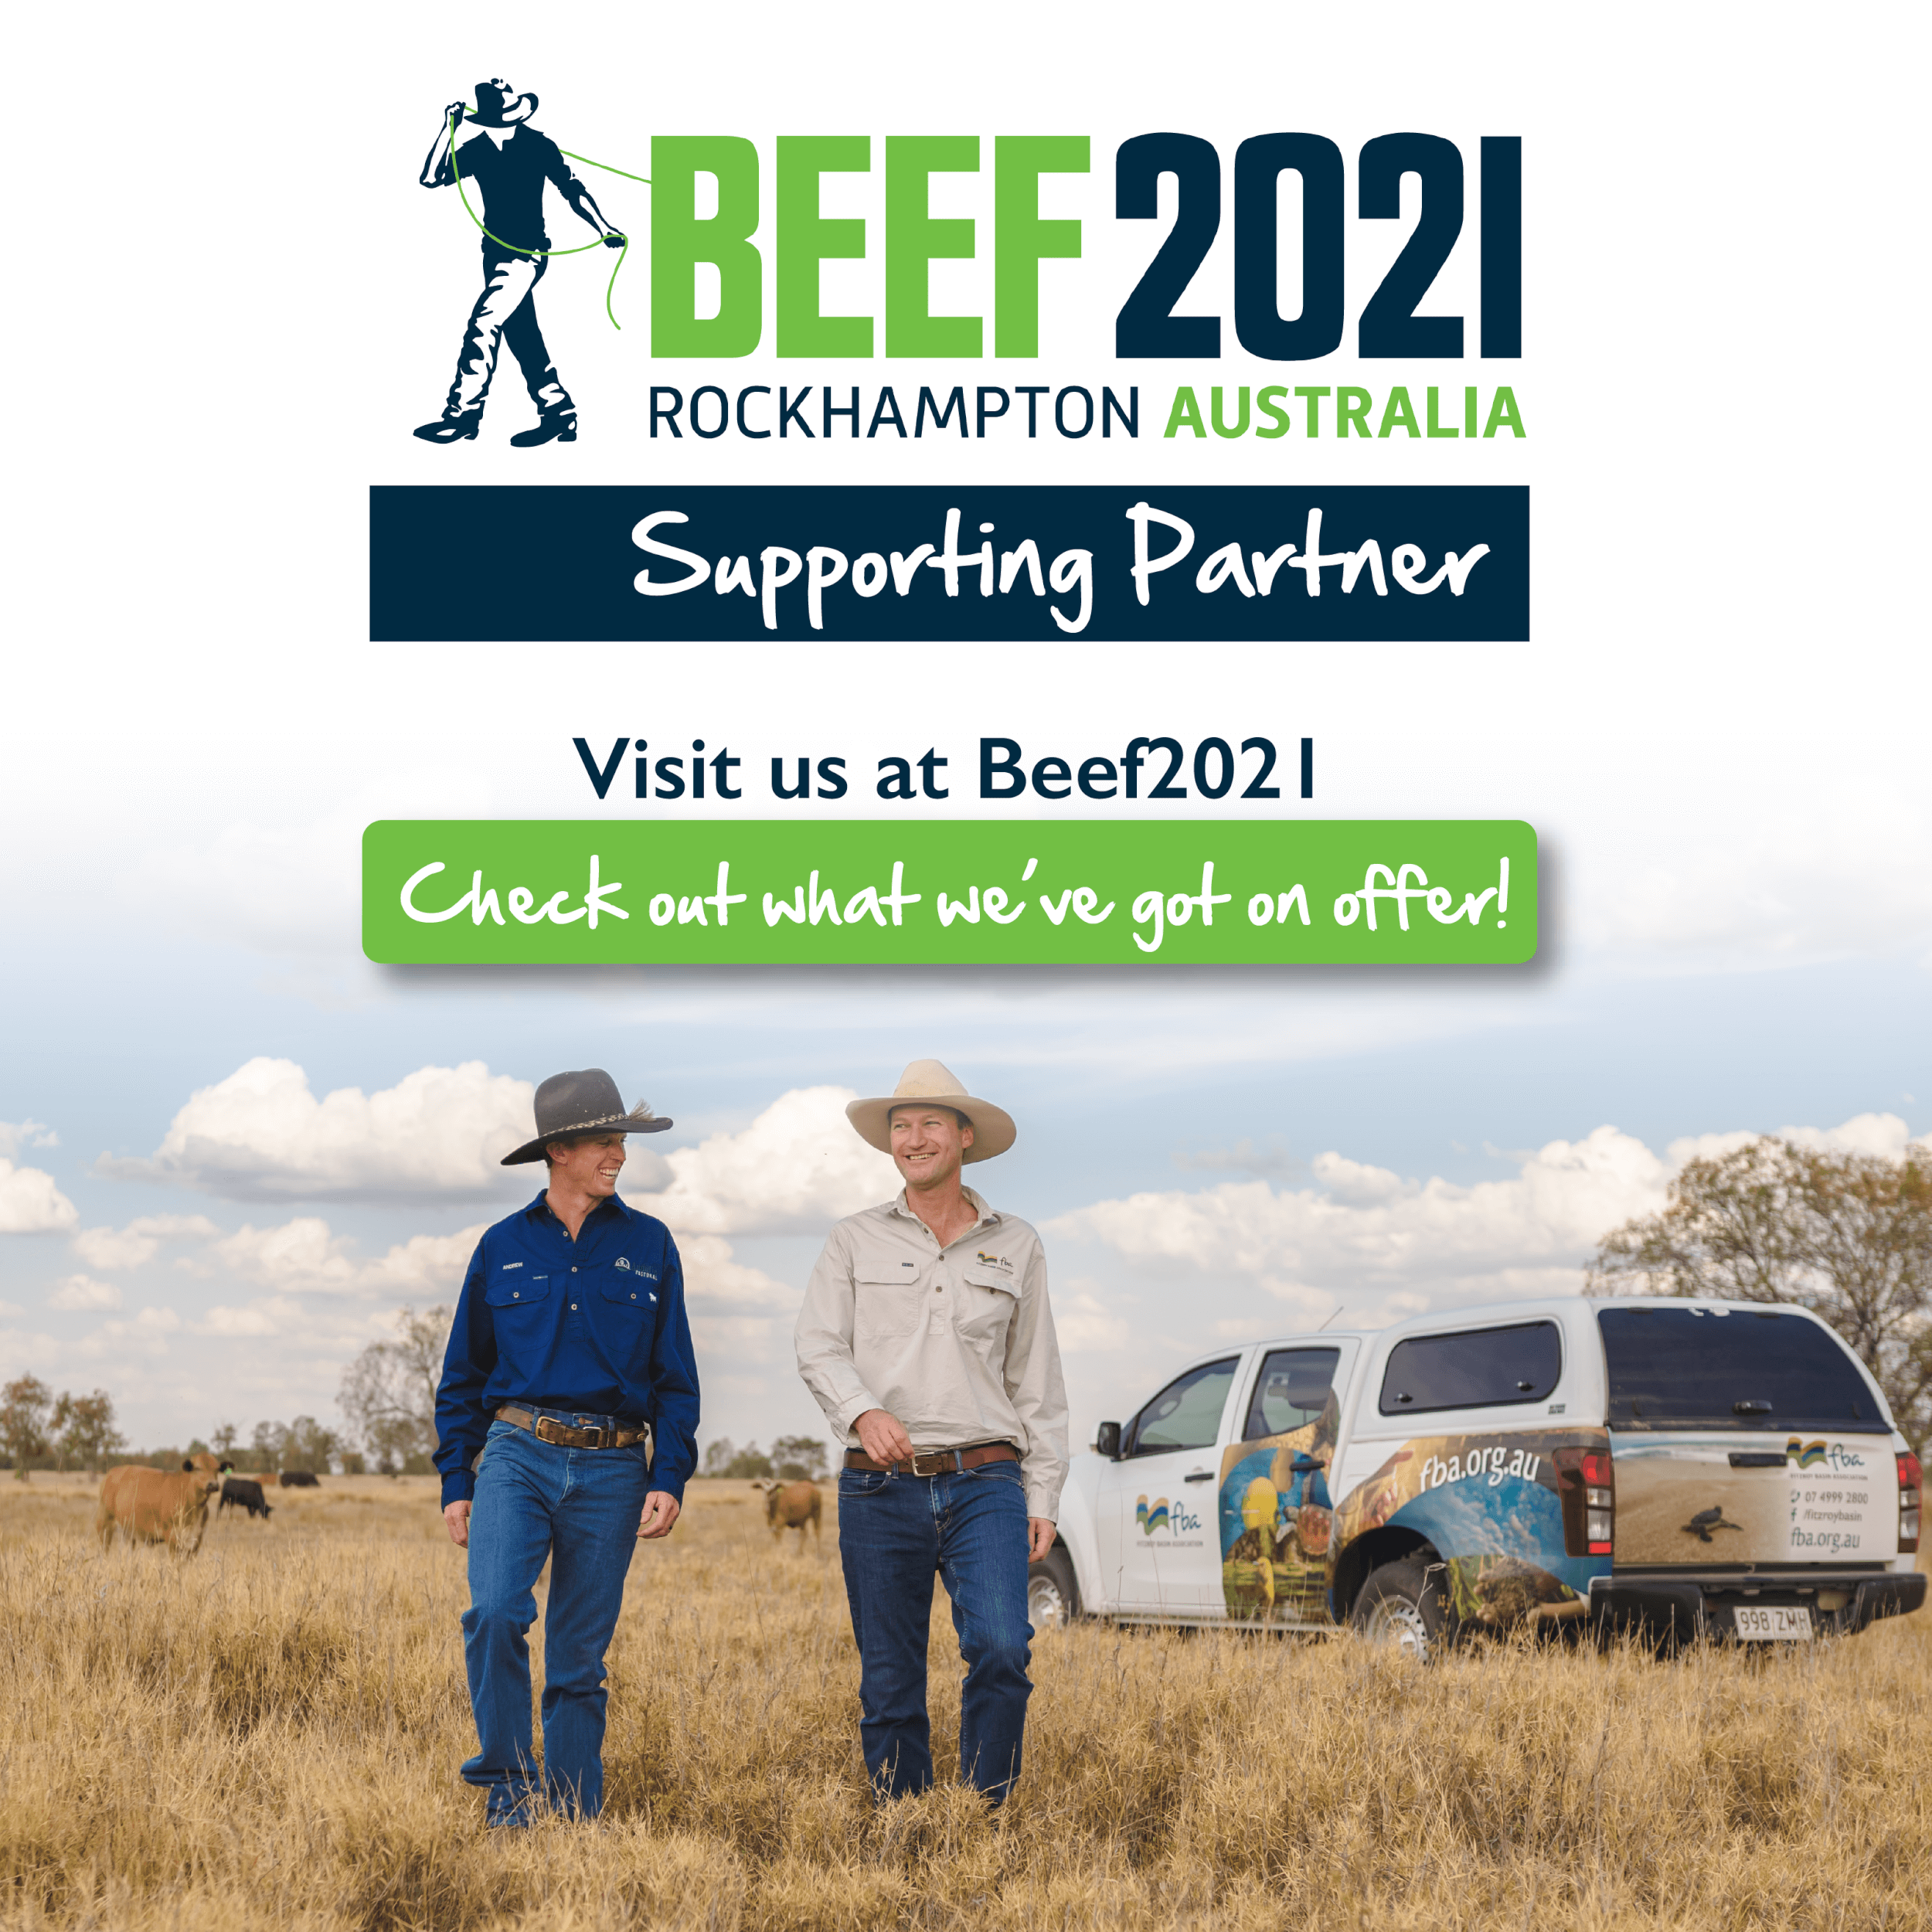 Beef2021 Event Info